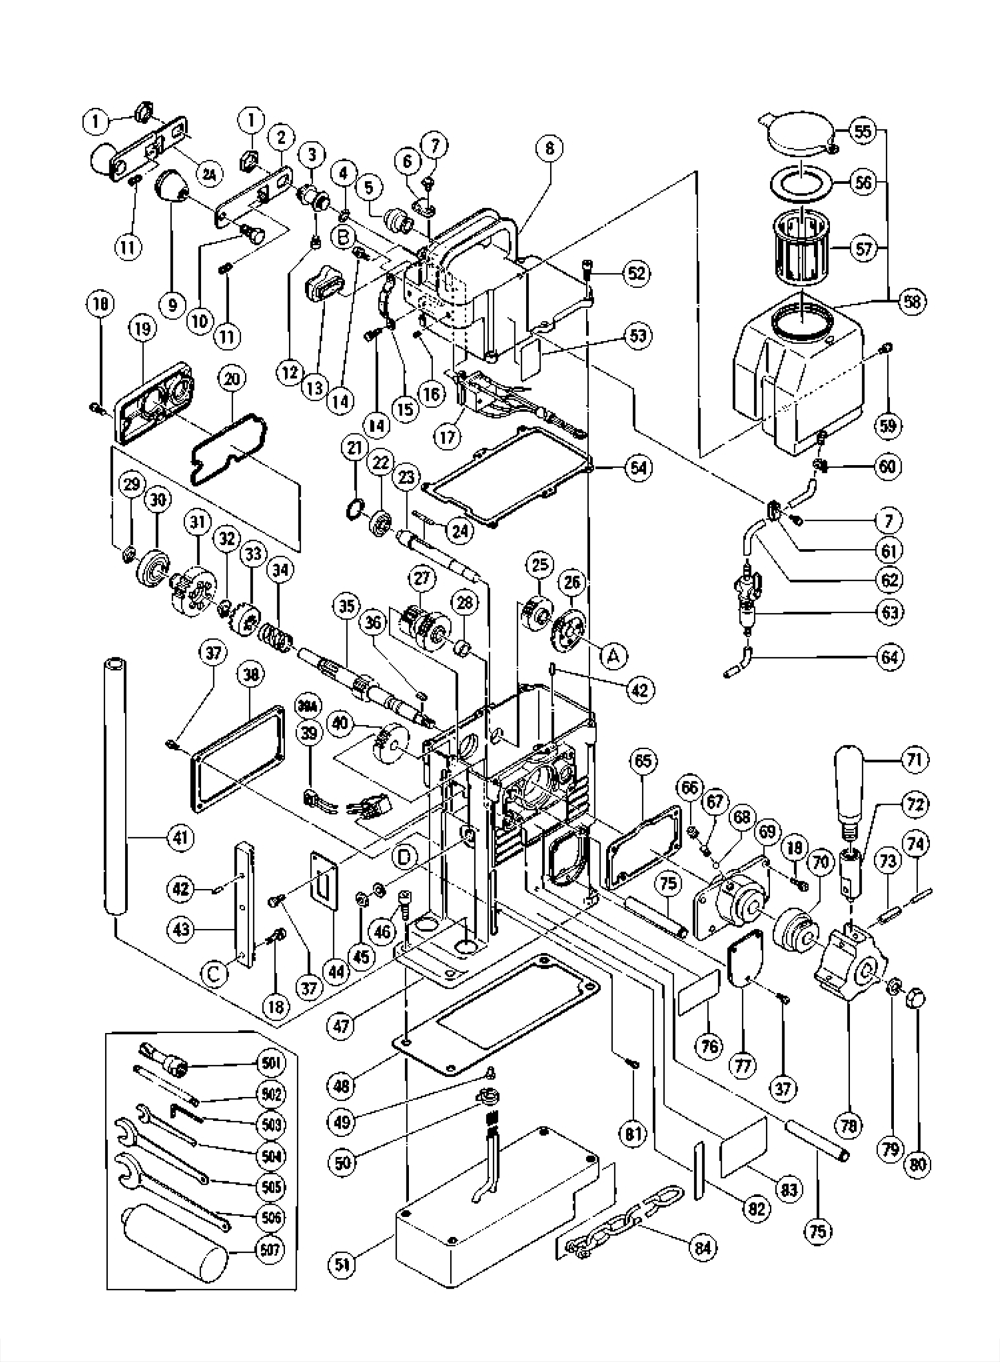 hitachi gsb107 wiring diagram best wiring library Hitachi Alternator 40 Amp Wiring hitachi bm25y parts list hitachi bm25y repair parts oem parts rh repairtoolparts hitachi gsb107 wiring